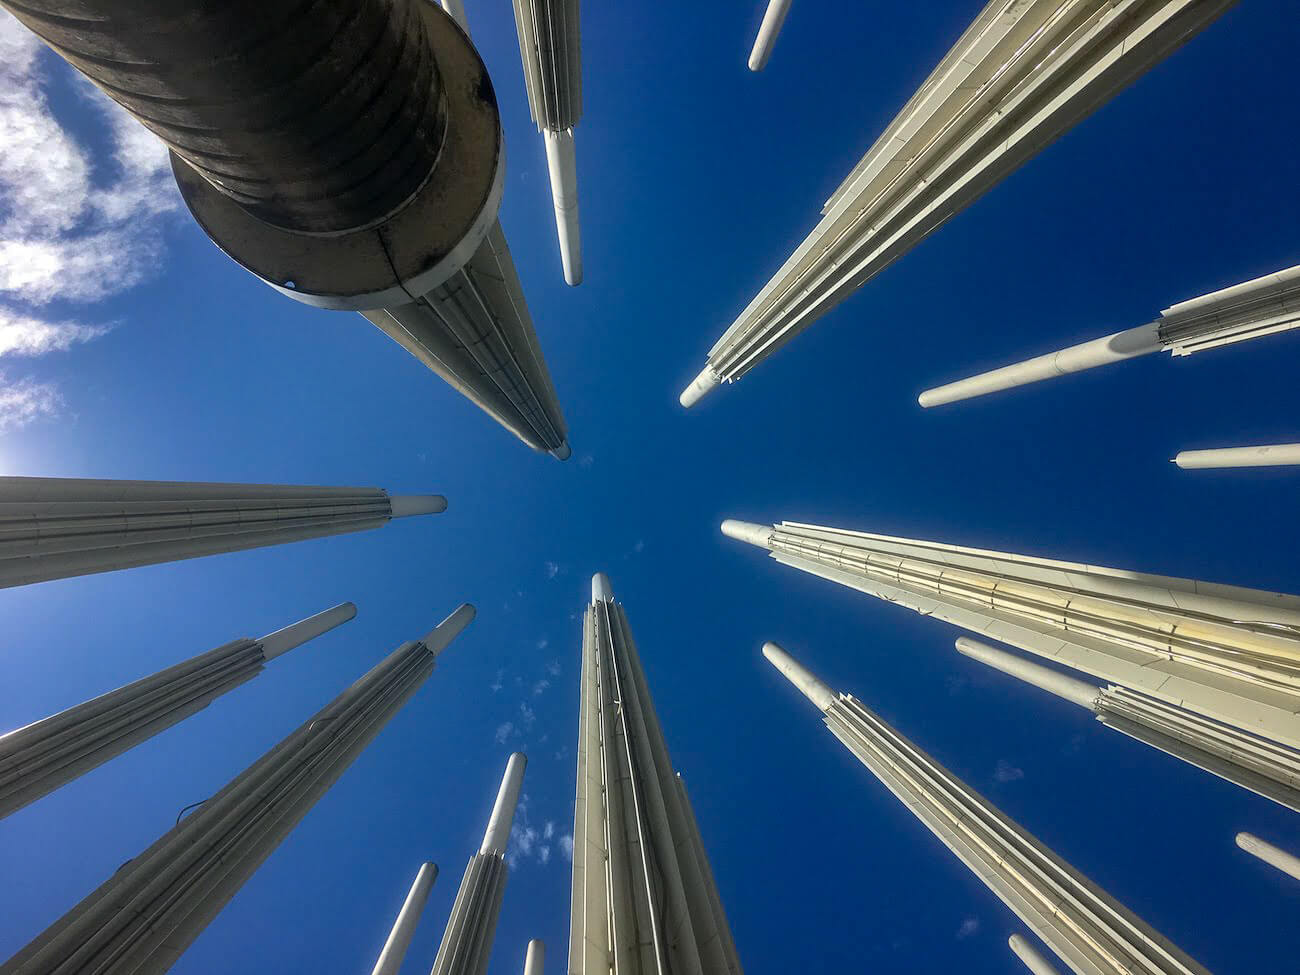 Plaza Cisneros looking straight up